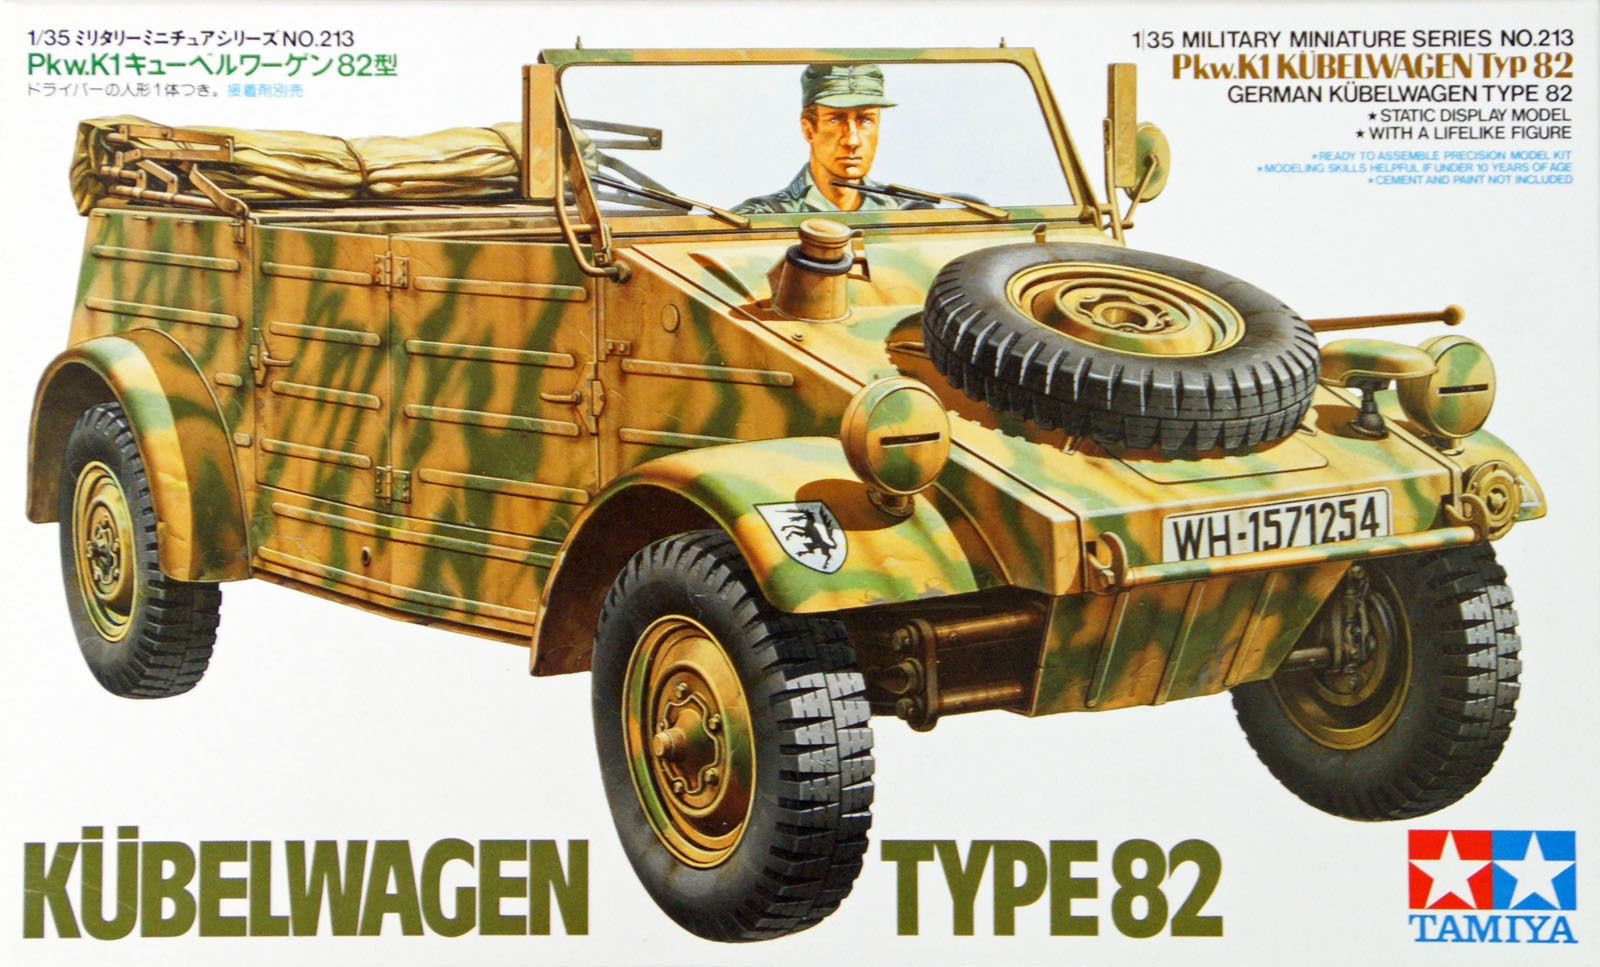 German Kubelwagen Type 82 - Tamiya 35213 - plastic model kit - 1/35 scale